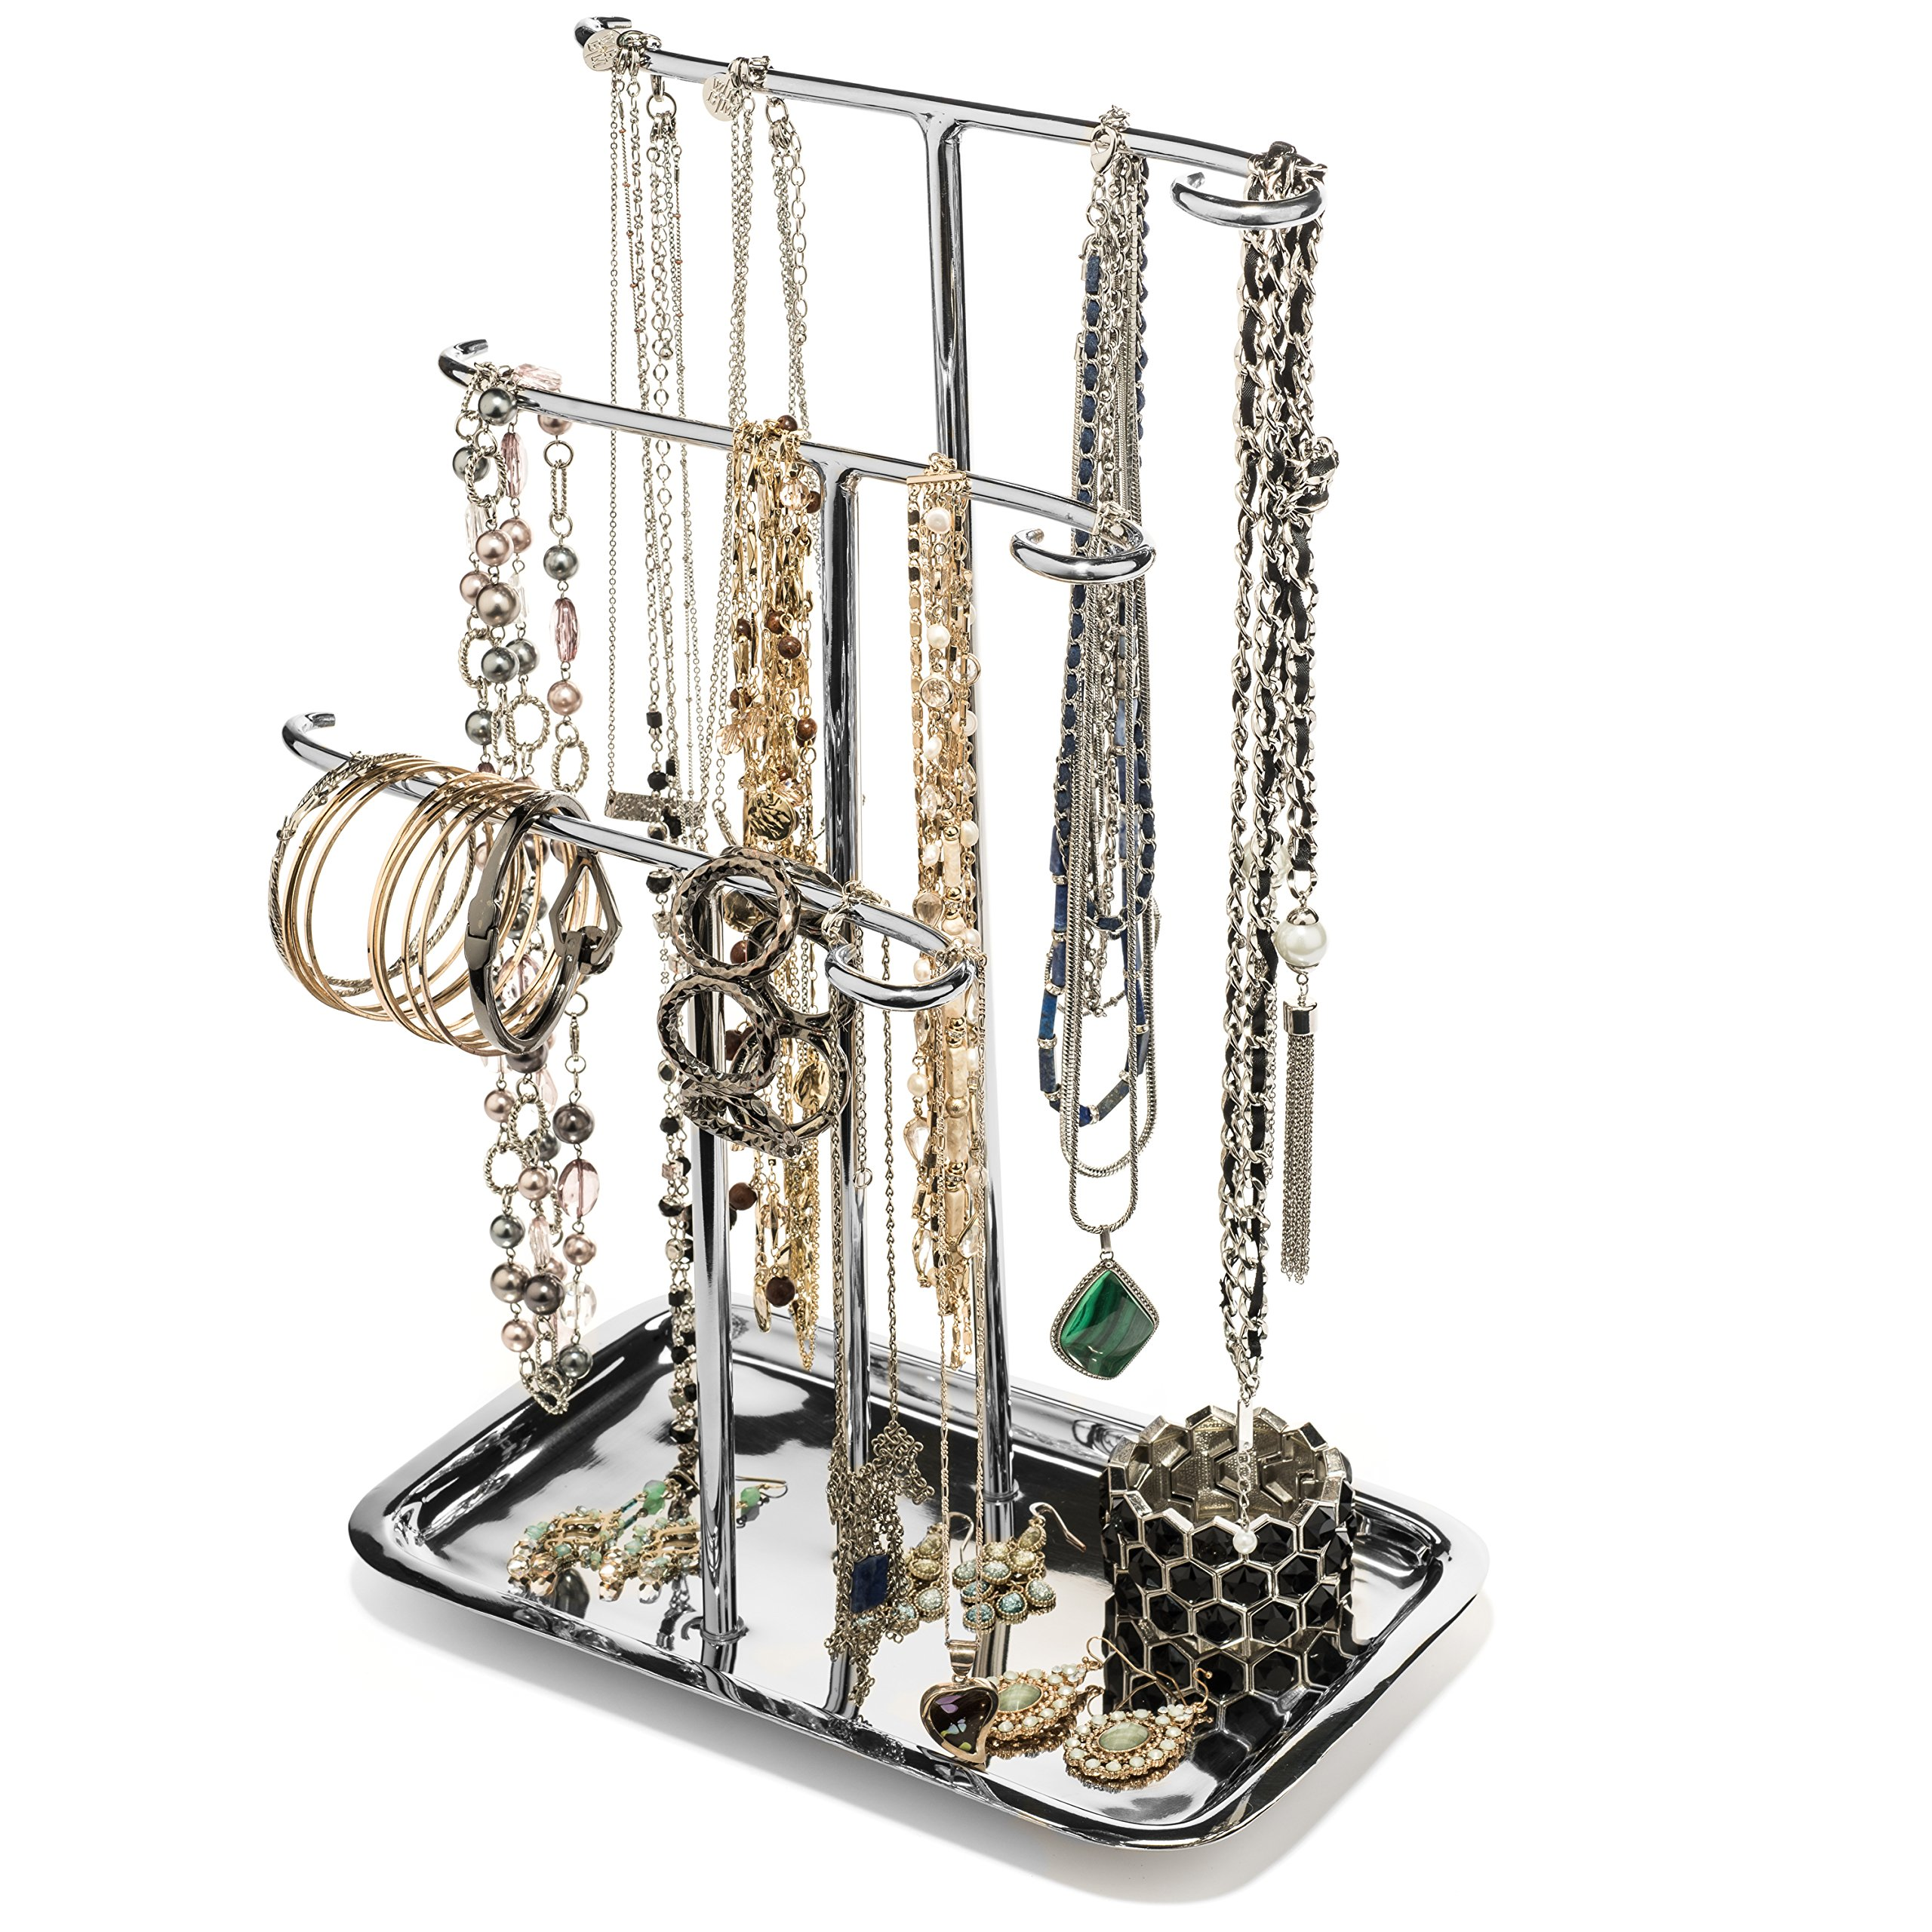 H Potter Necklace Holder Jewelry Organizer Bracelet Display Stand Ring Tray